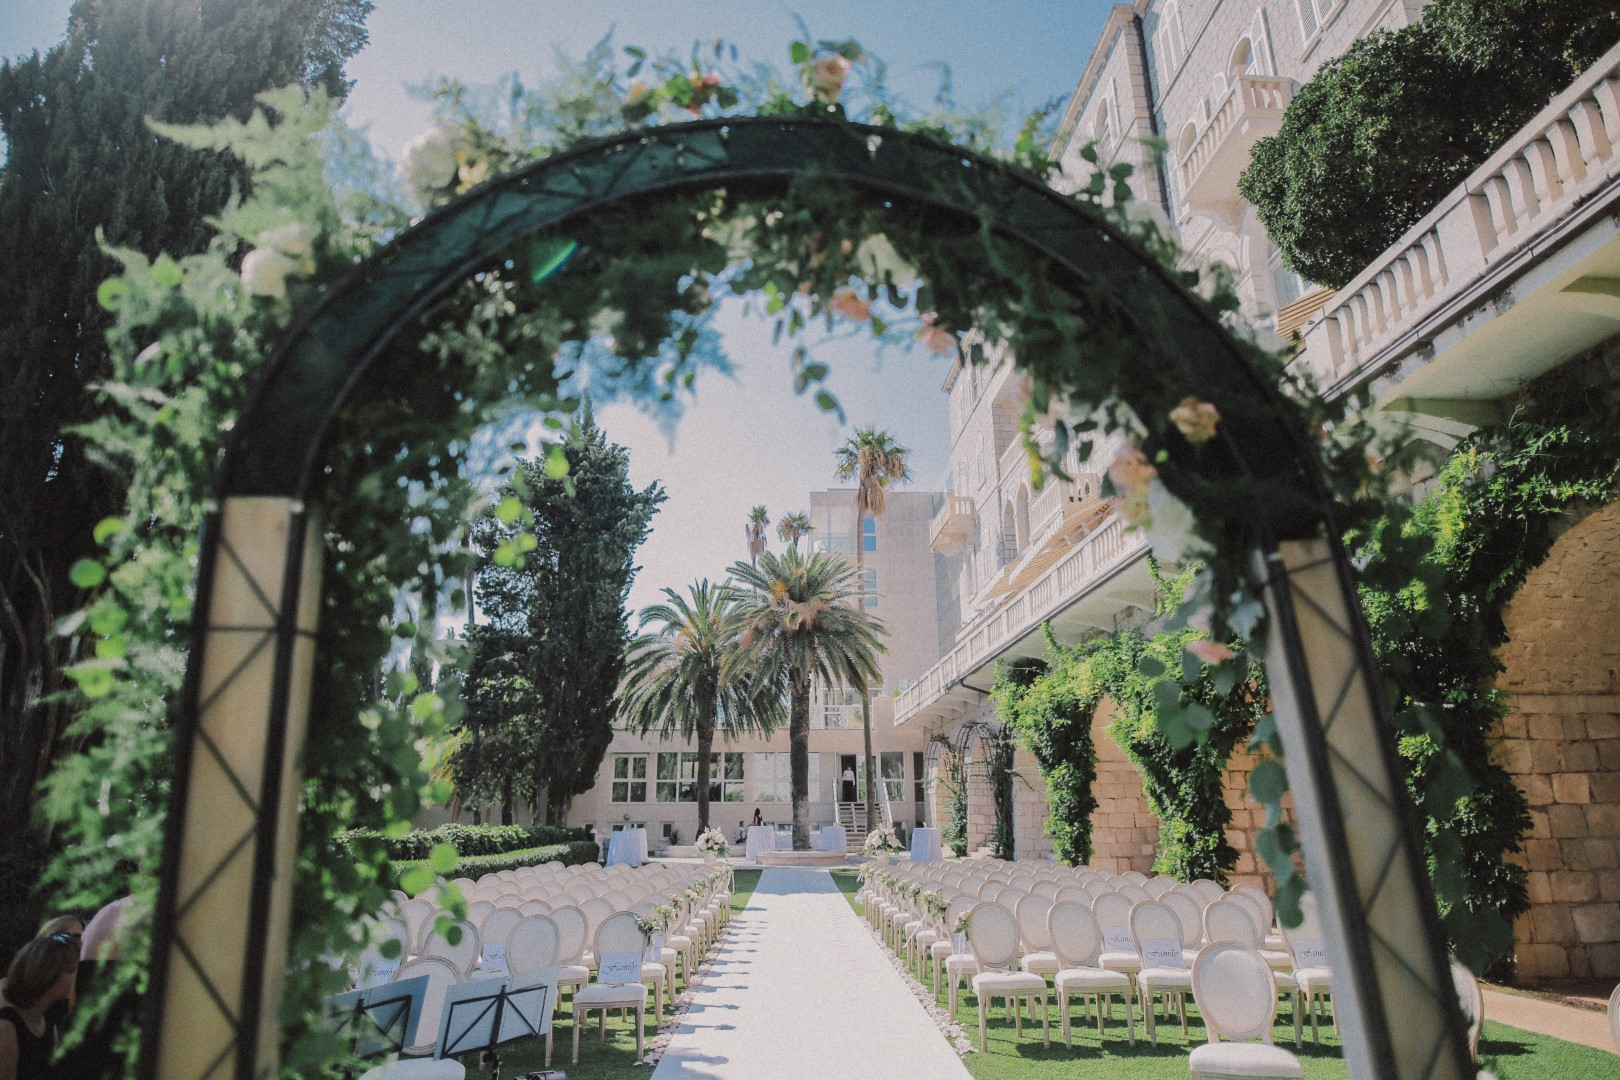 This photo shows the behind of an arch set up for a wedding ceremony. It is a garden ceremony in front of the Villa Argentina hotel in Dubrovnik. There are many beautiful white chairs and palm trees in the background.